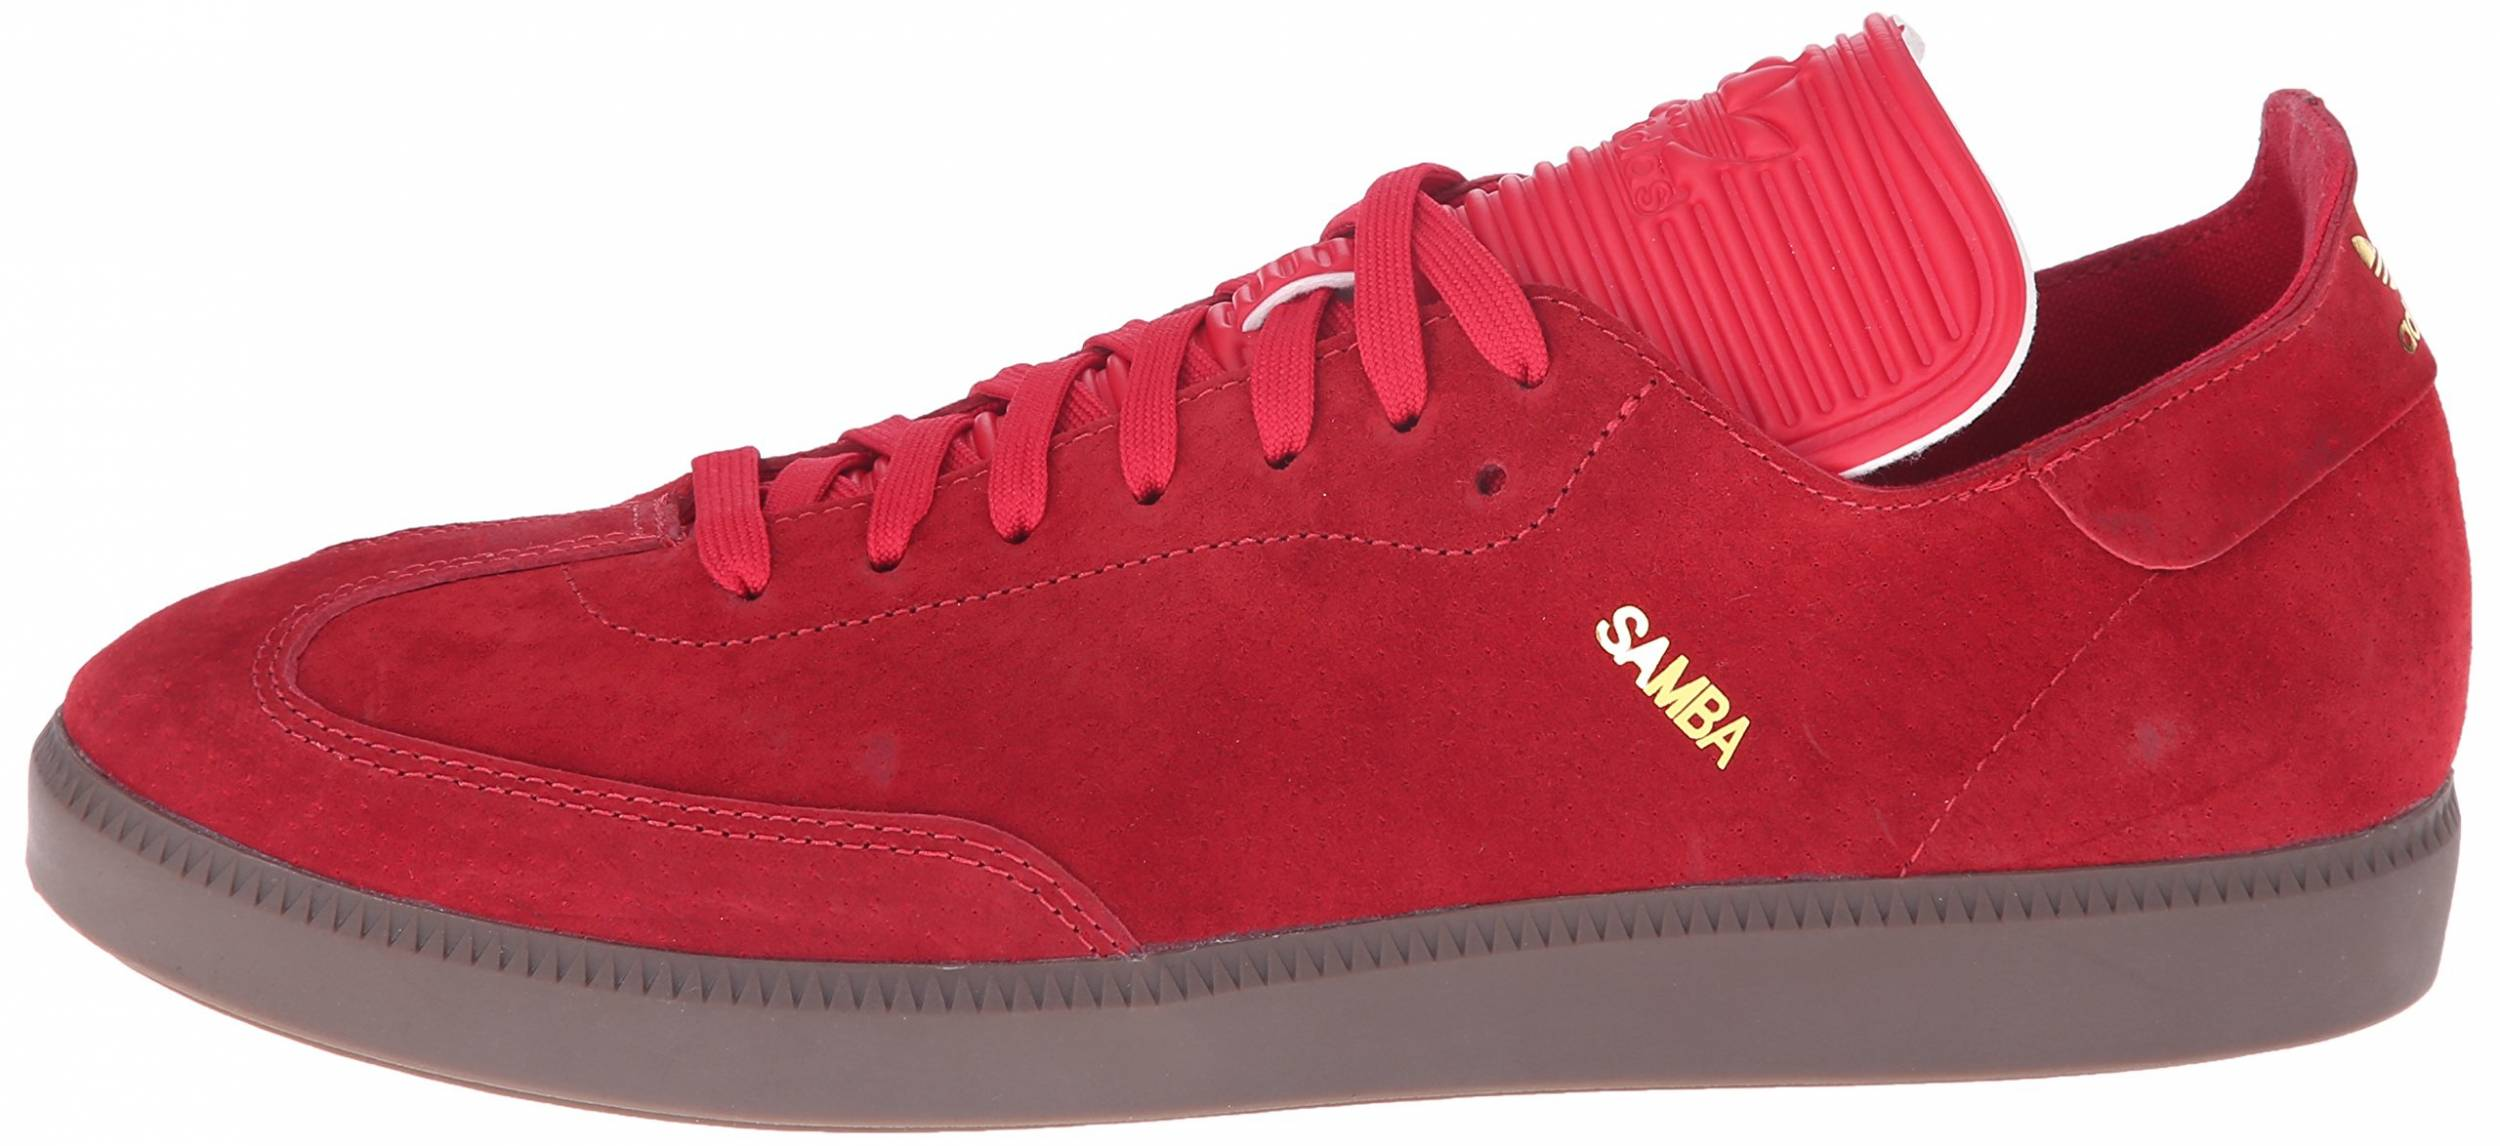 General Están familiarizados Atravesar  Adidas Samba MC Leather sneakers in red | RunRepeat